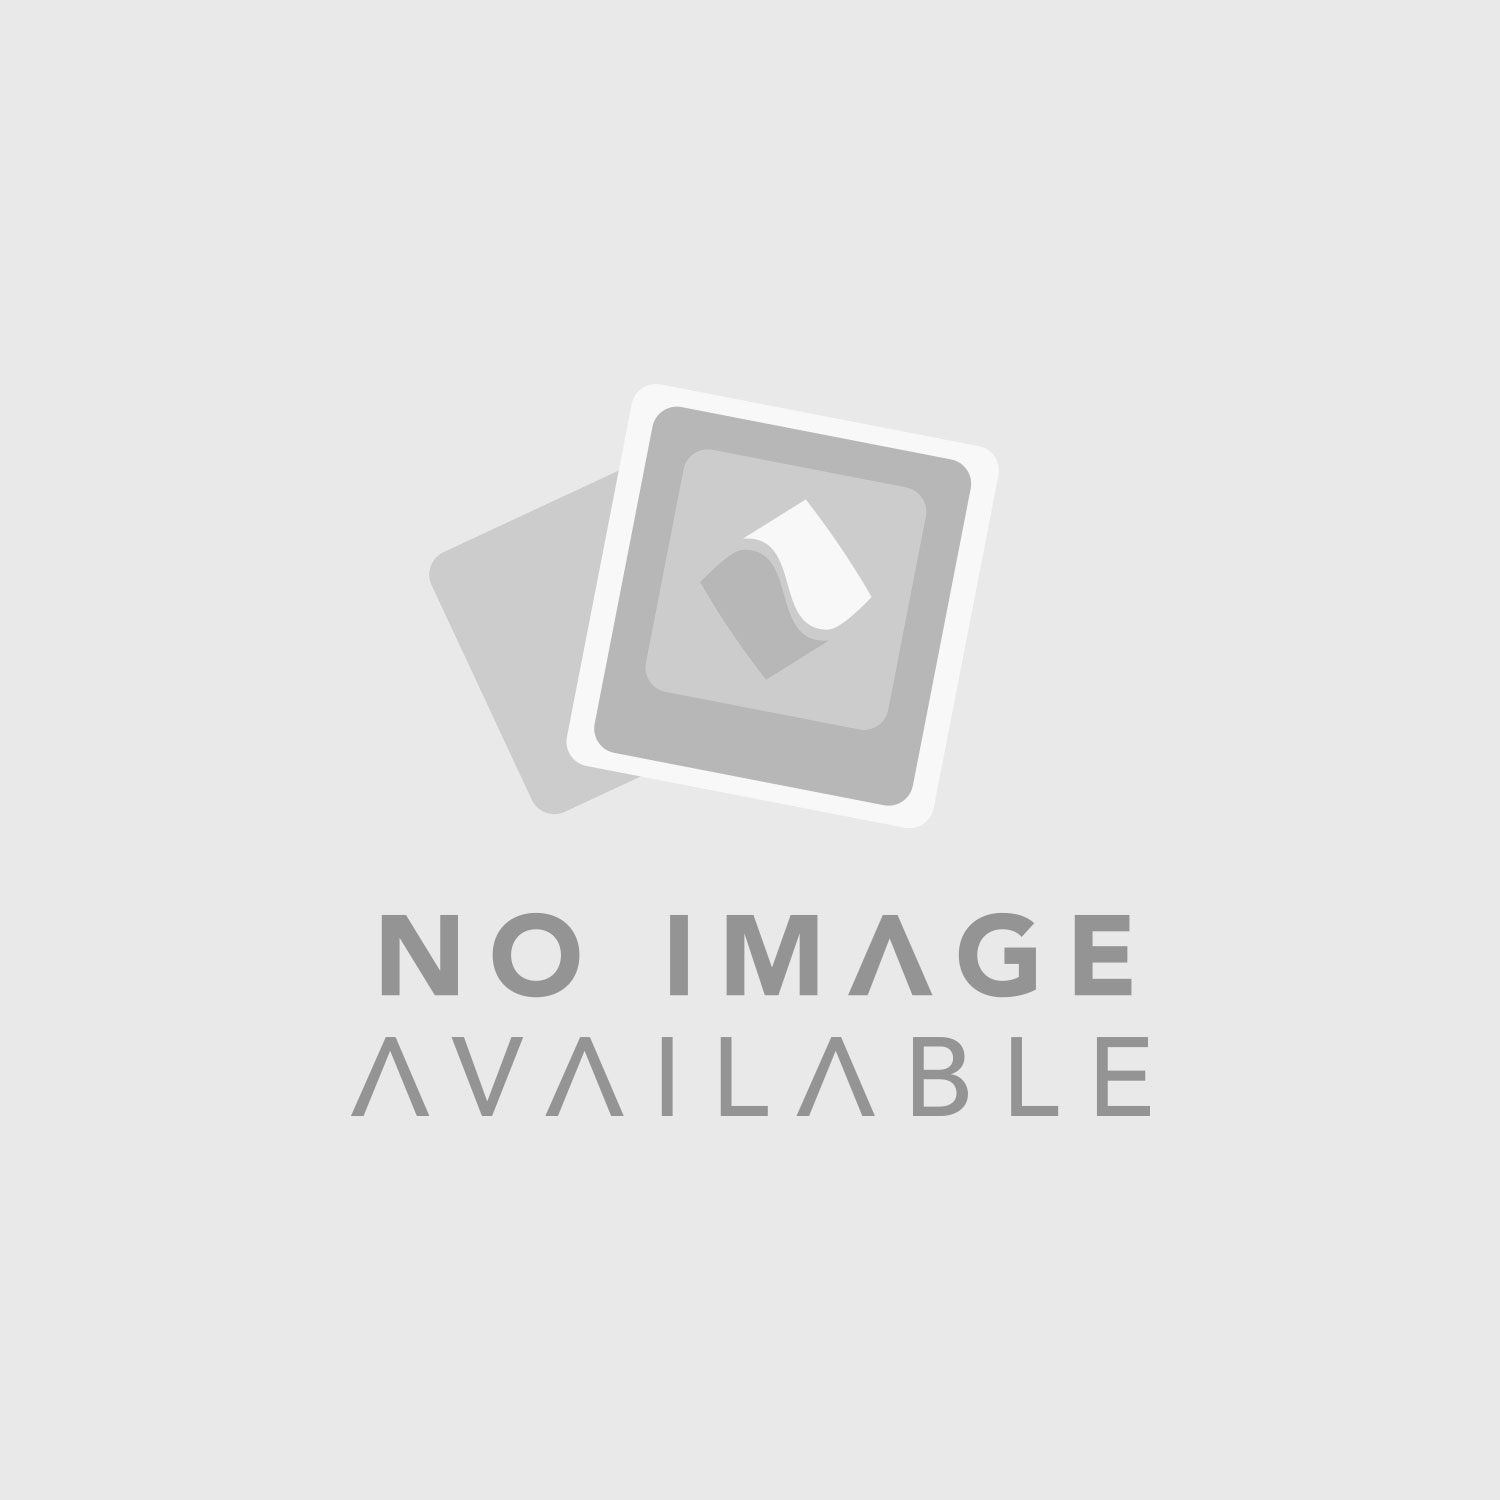 Avid Pro Tools | Ultimate Audio & Music Creation Software 1-Year Subscription (Download, Education)